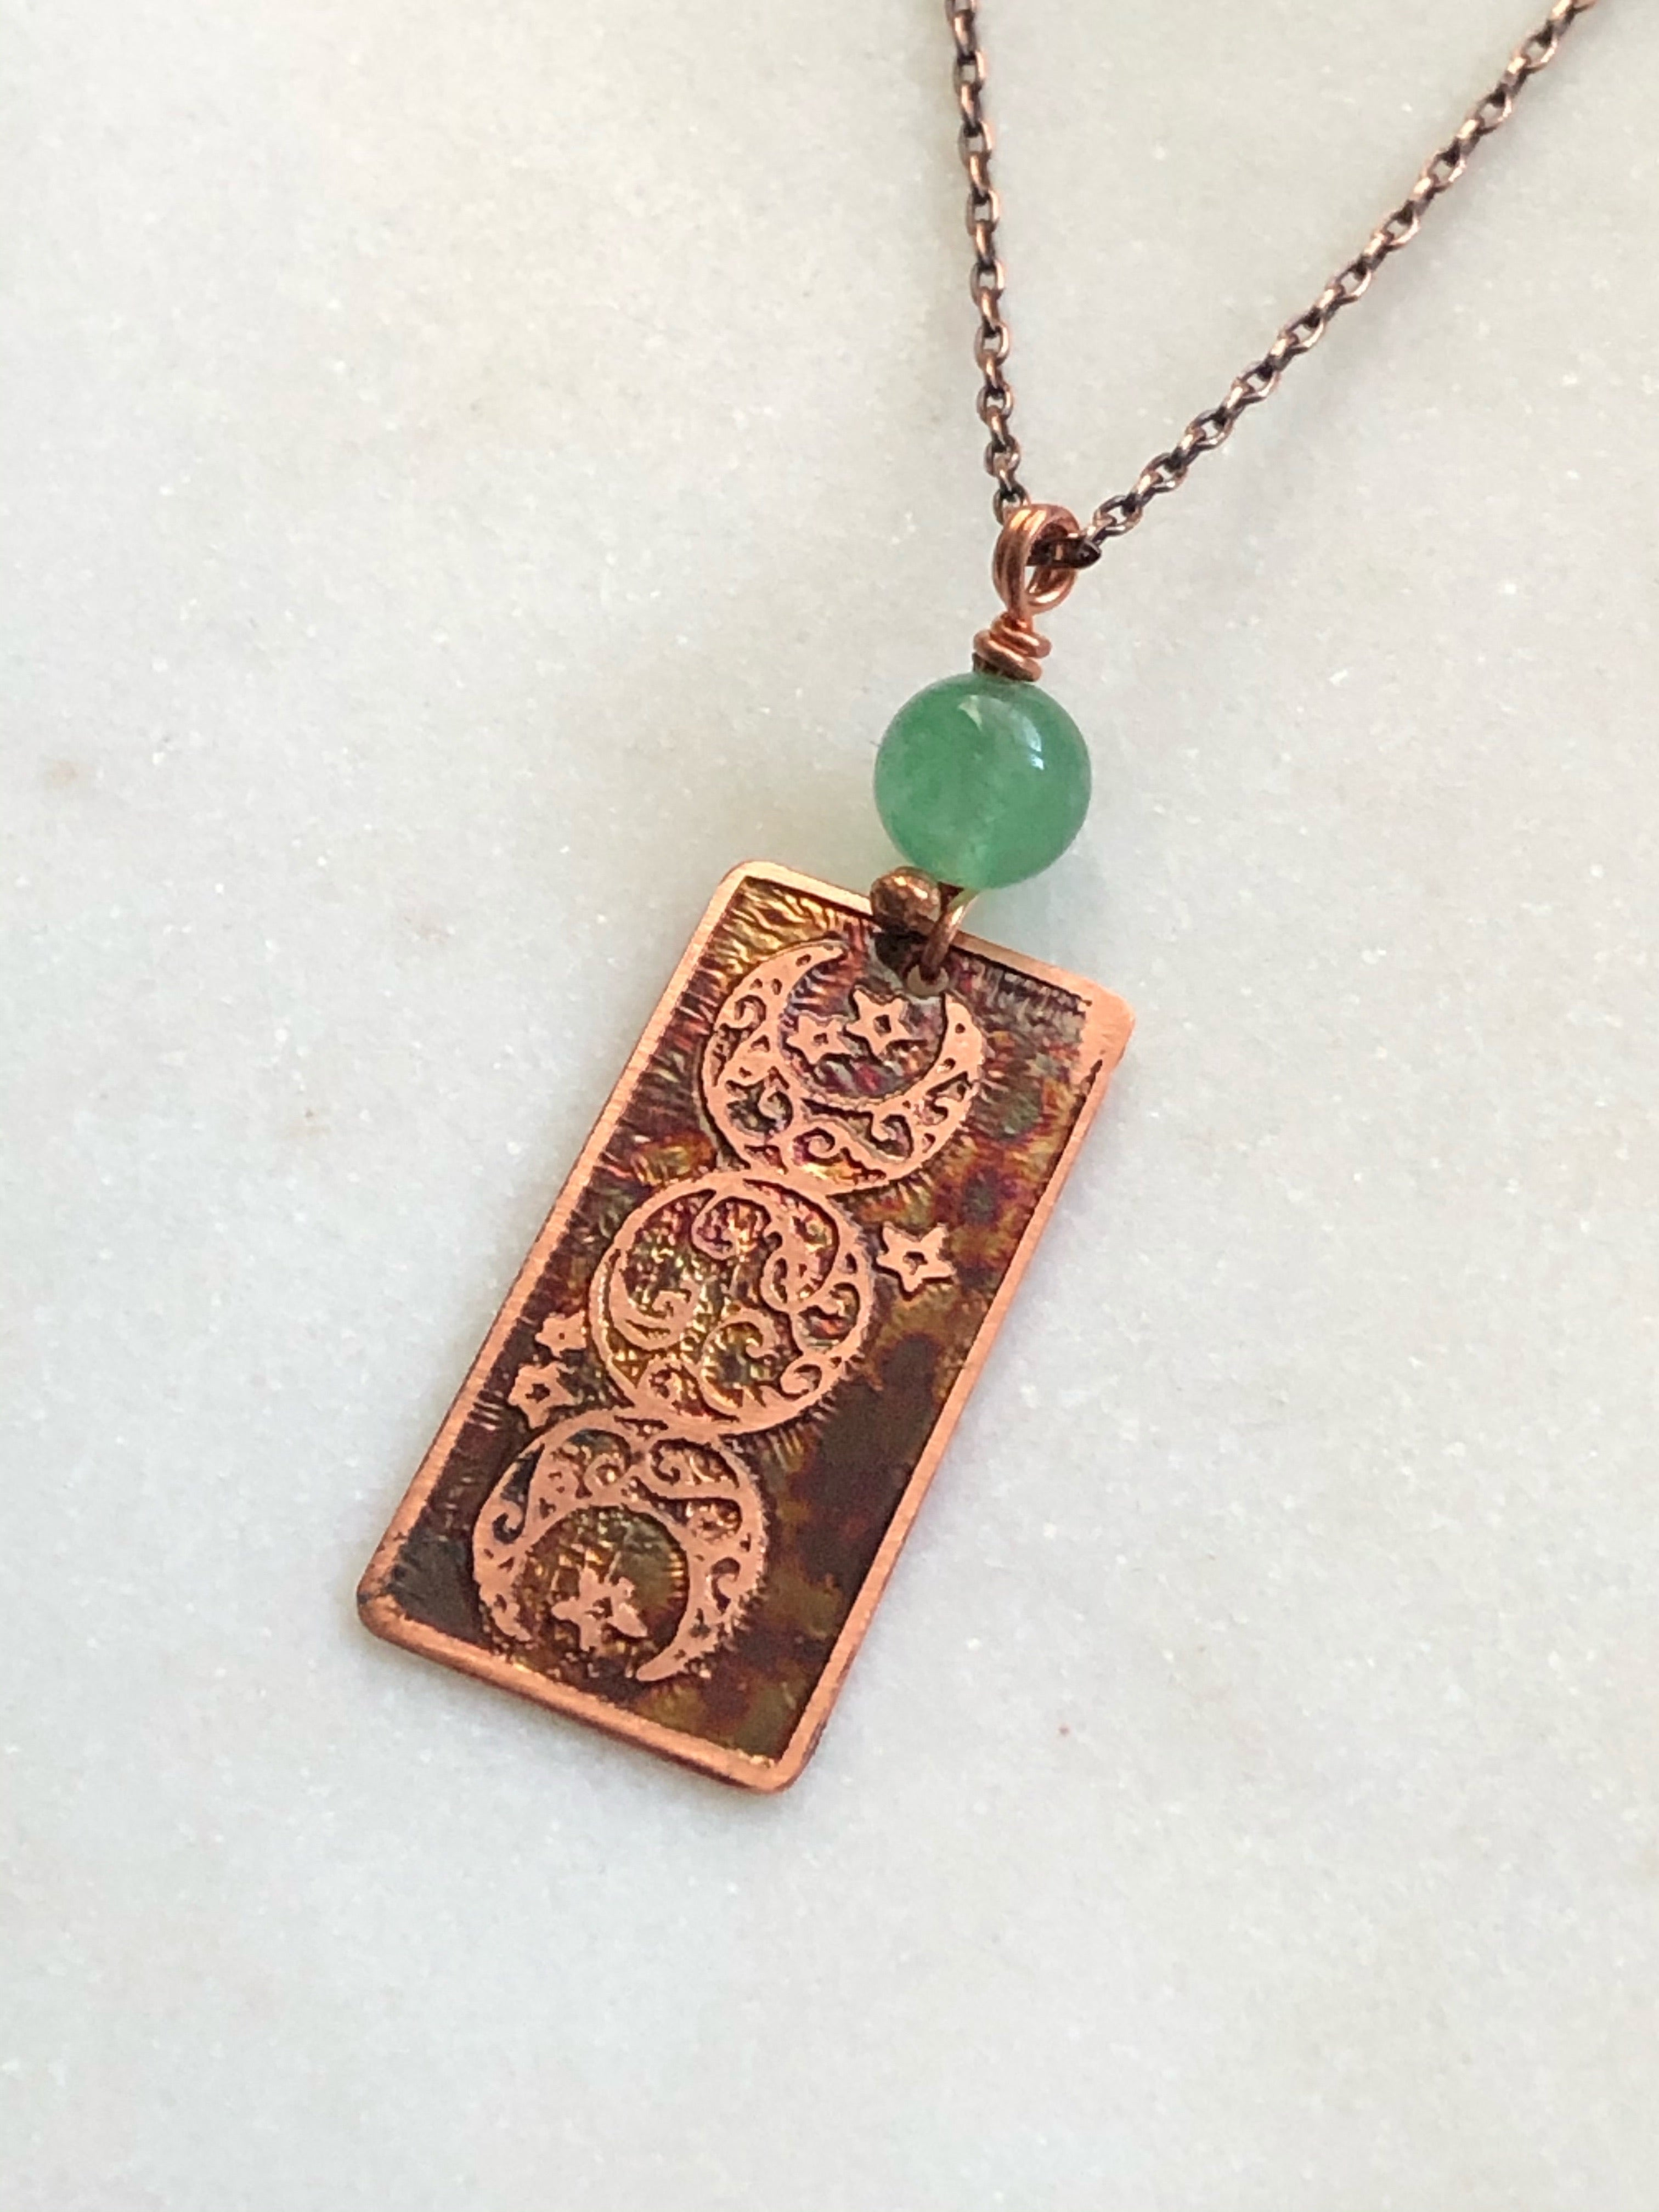 Acid etched copper moon necklace with aventurine